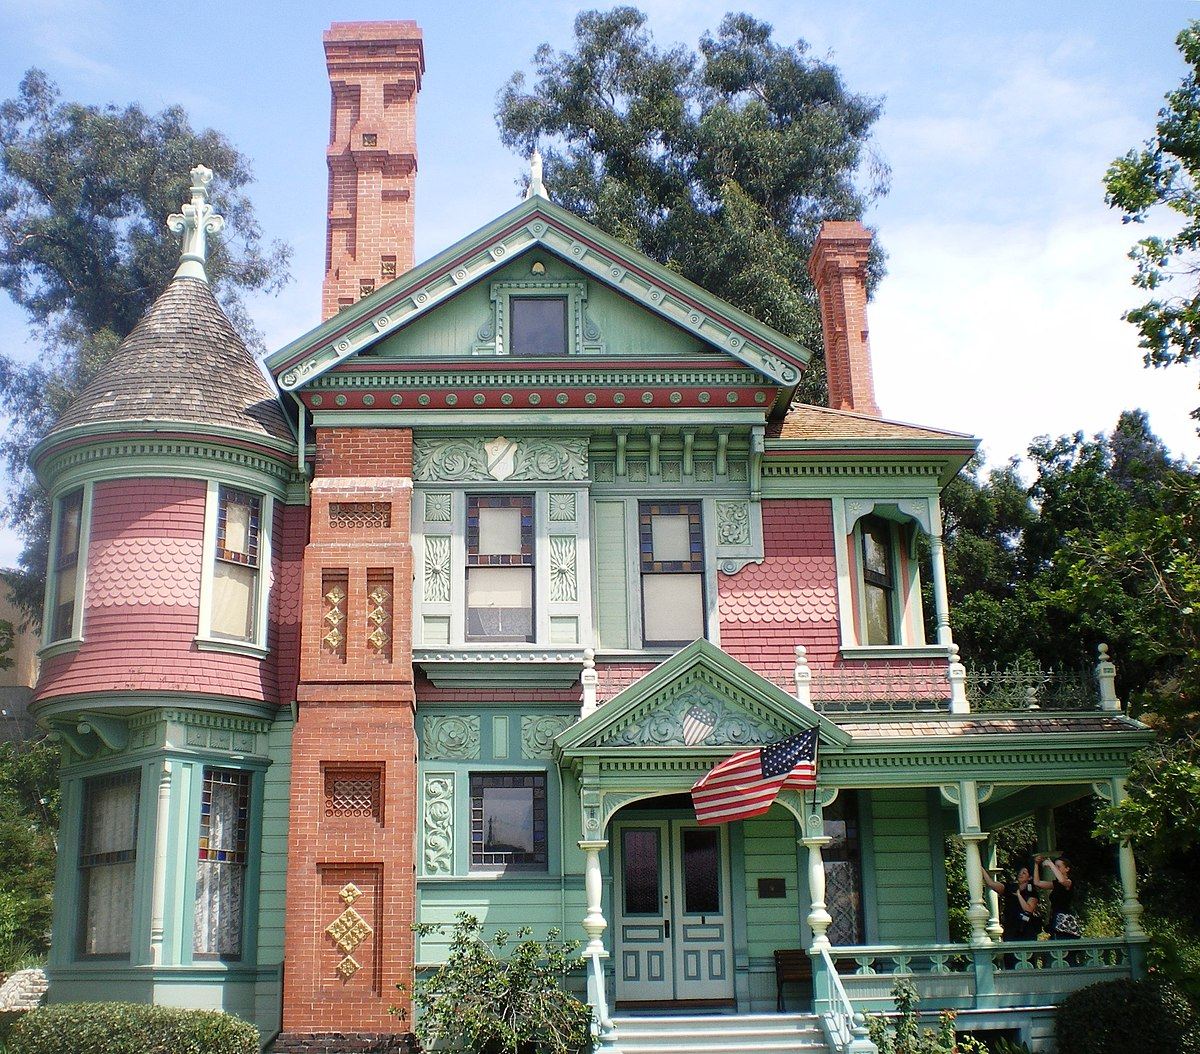 A Complete Tour Of A Victorian Style Mansion: Hale House